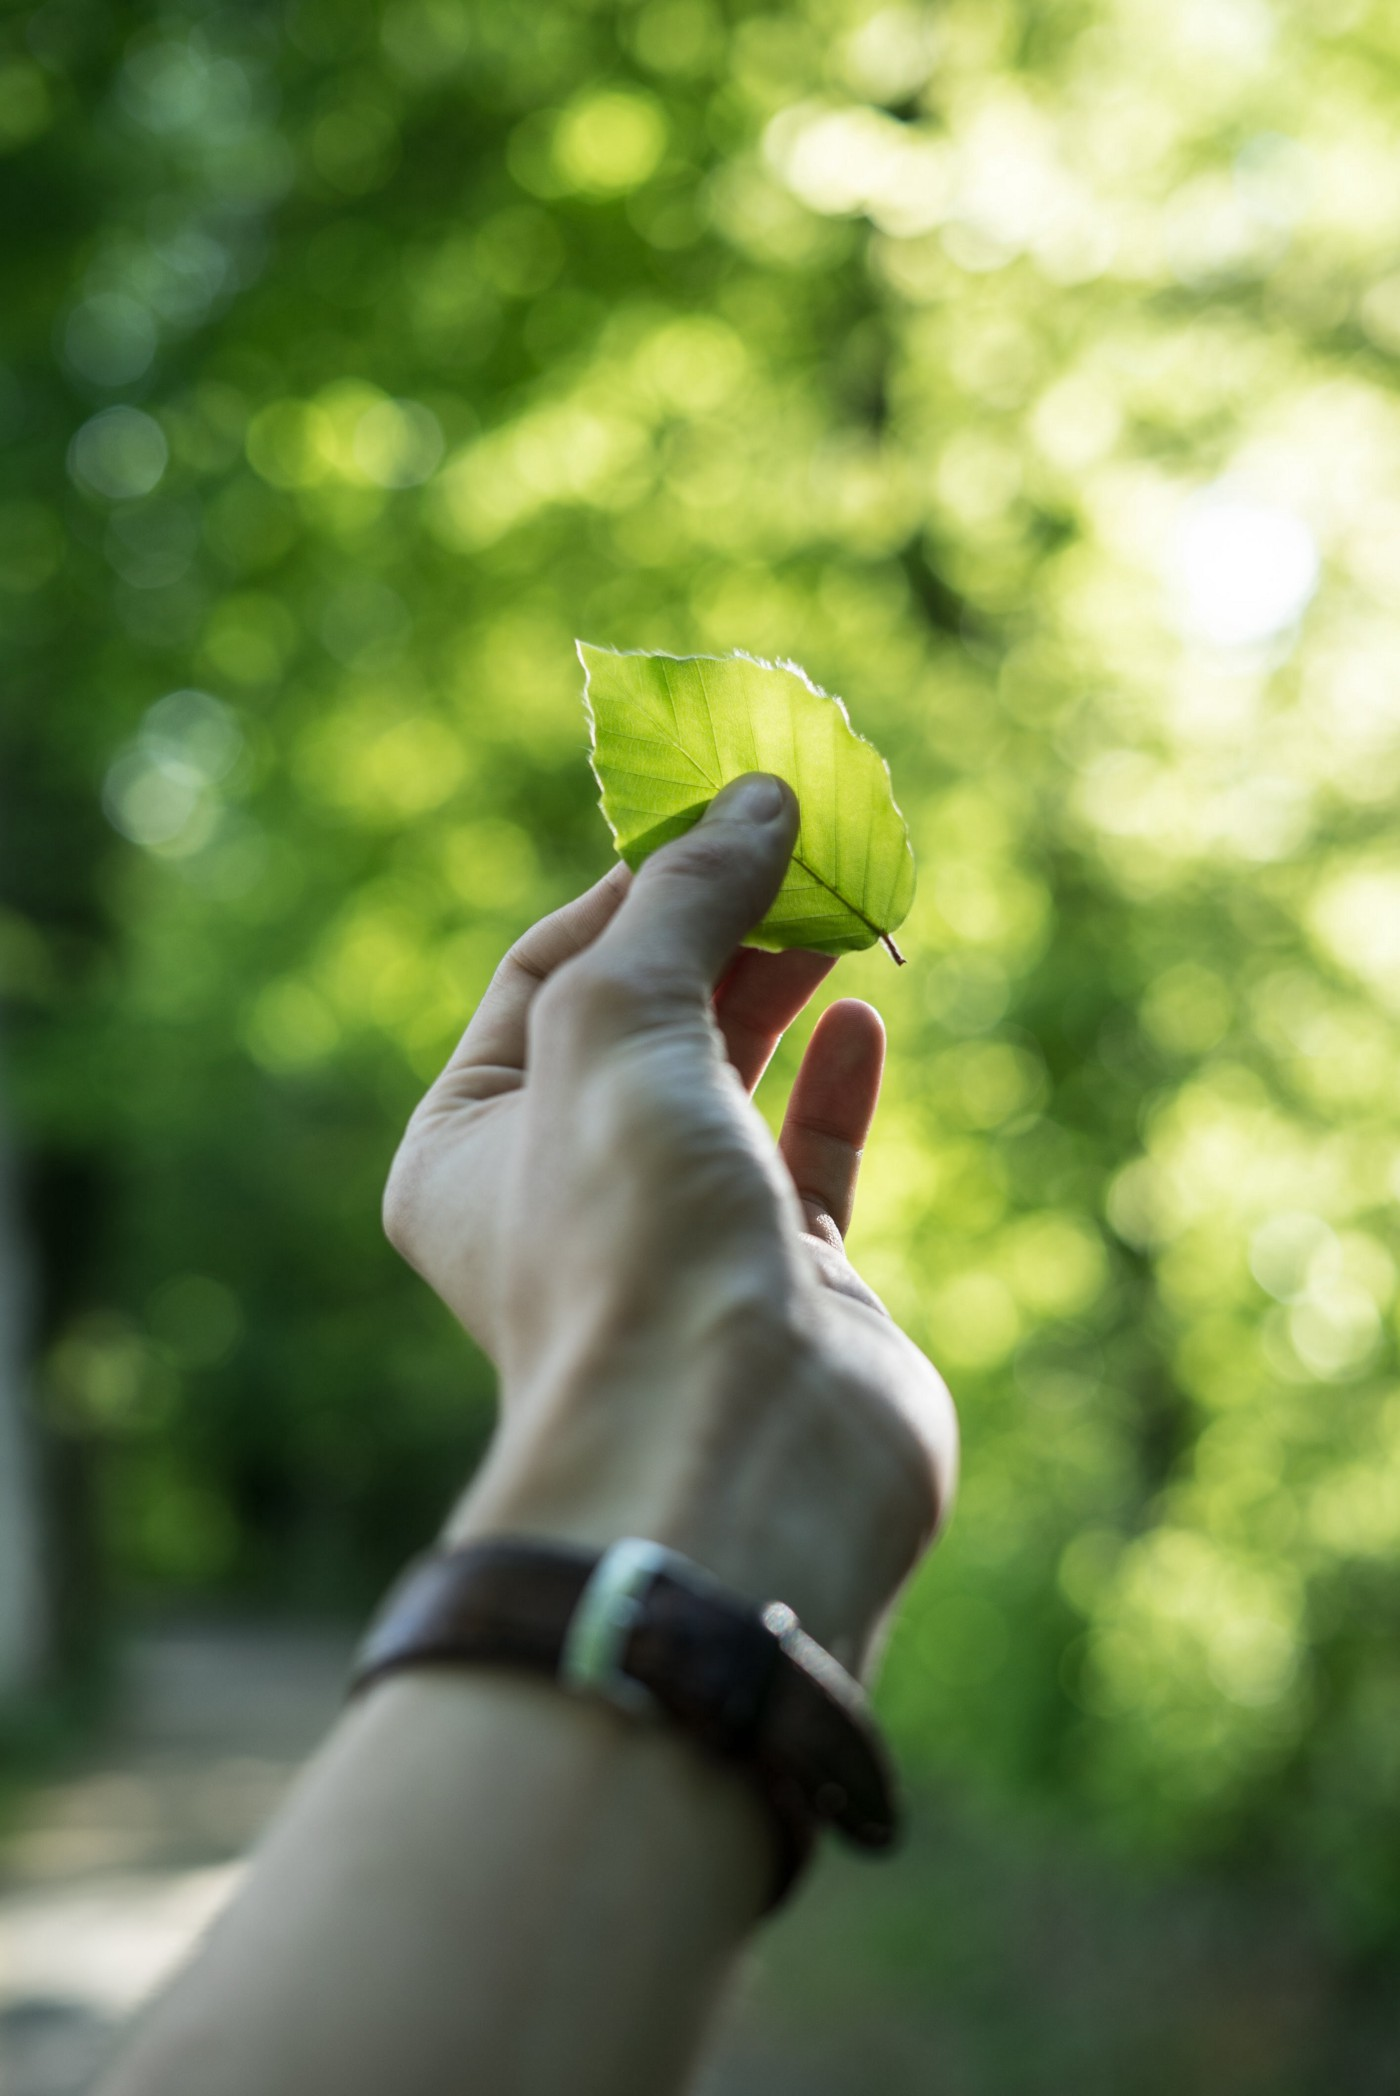 A person holding a leaf with his hand in front of a green background.